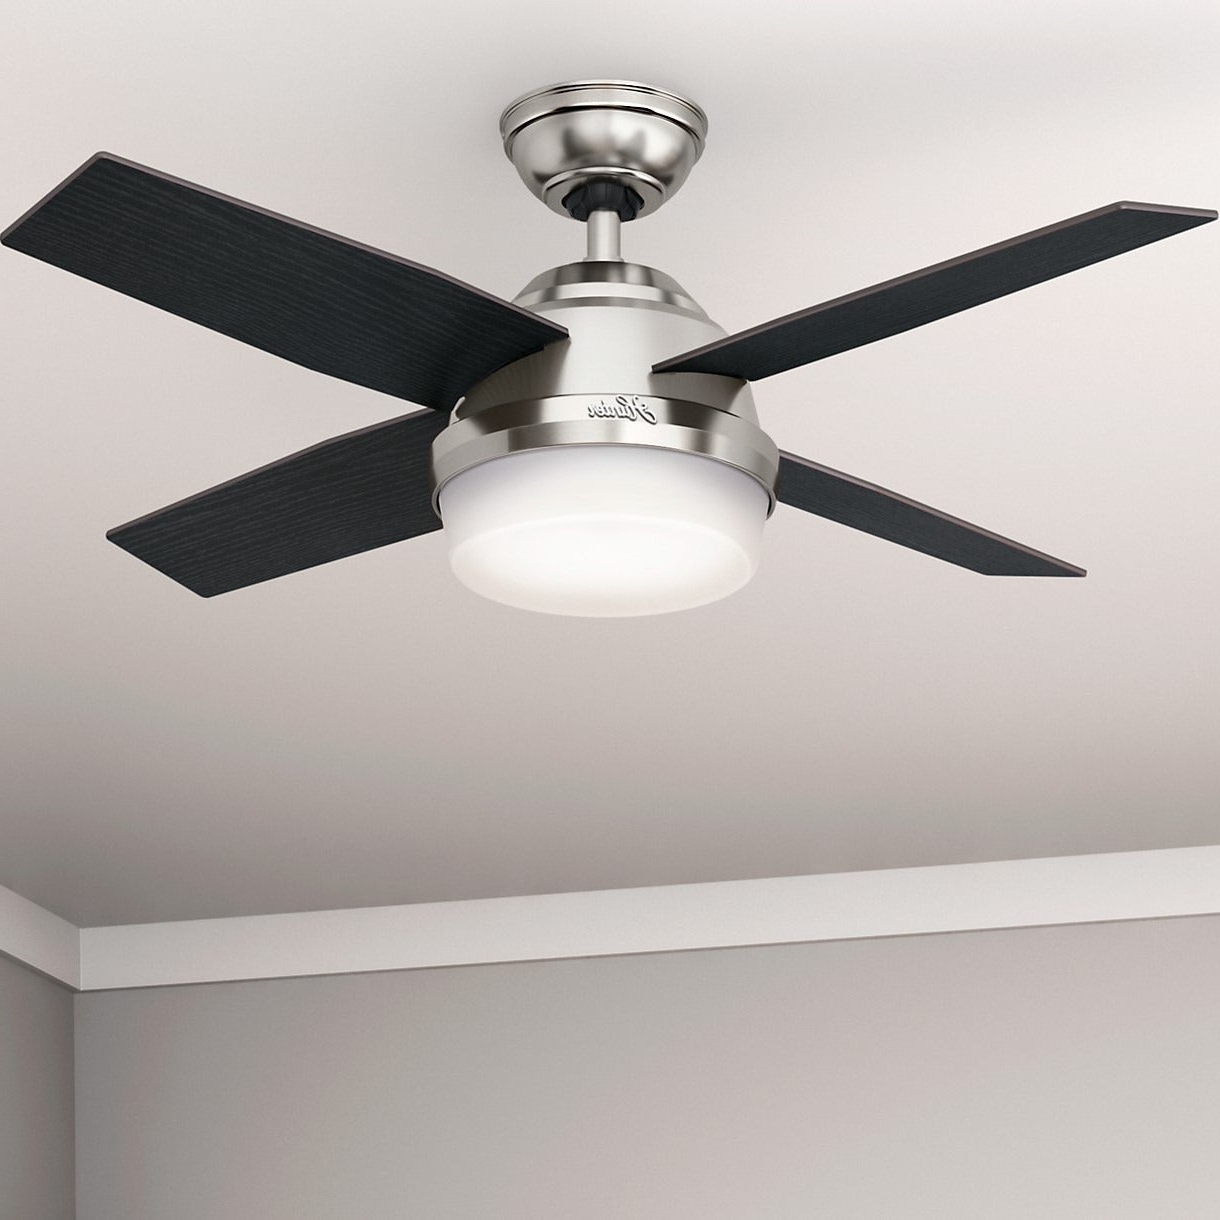 Hunter Fan Dempsey Collection Brushed Nickel 44 Inch Ceiling Fan With 4  Reversible Black Oak/chocolate Oak Blades – Silver Regarding Well Known Dempsey 4 Blade Ceiling Fans (View 12 of 20)